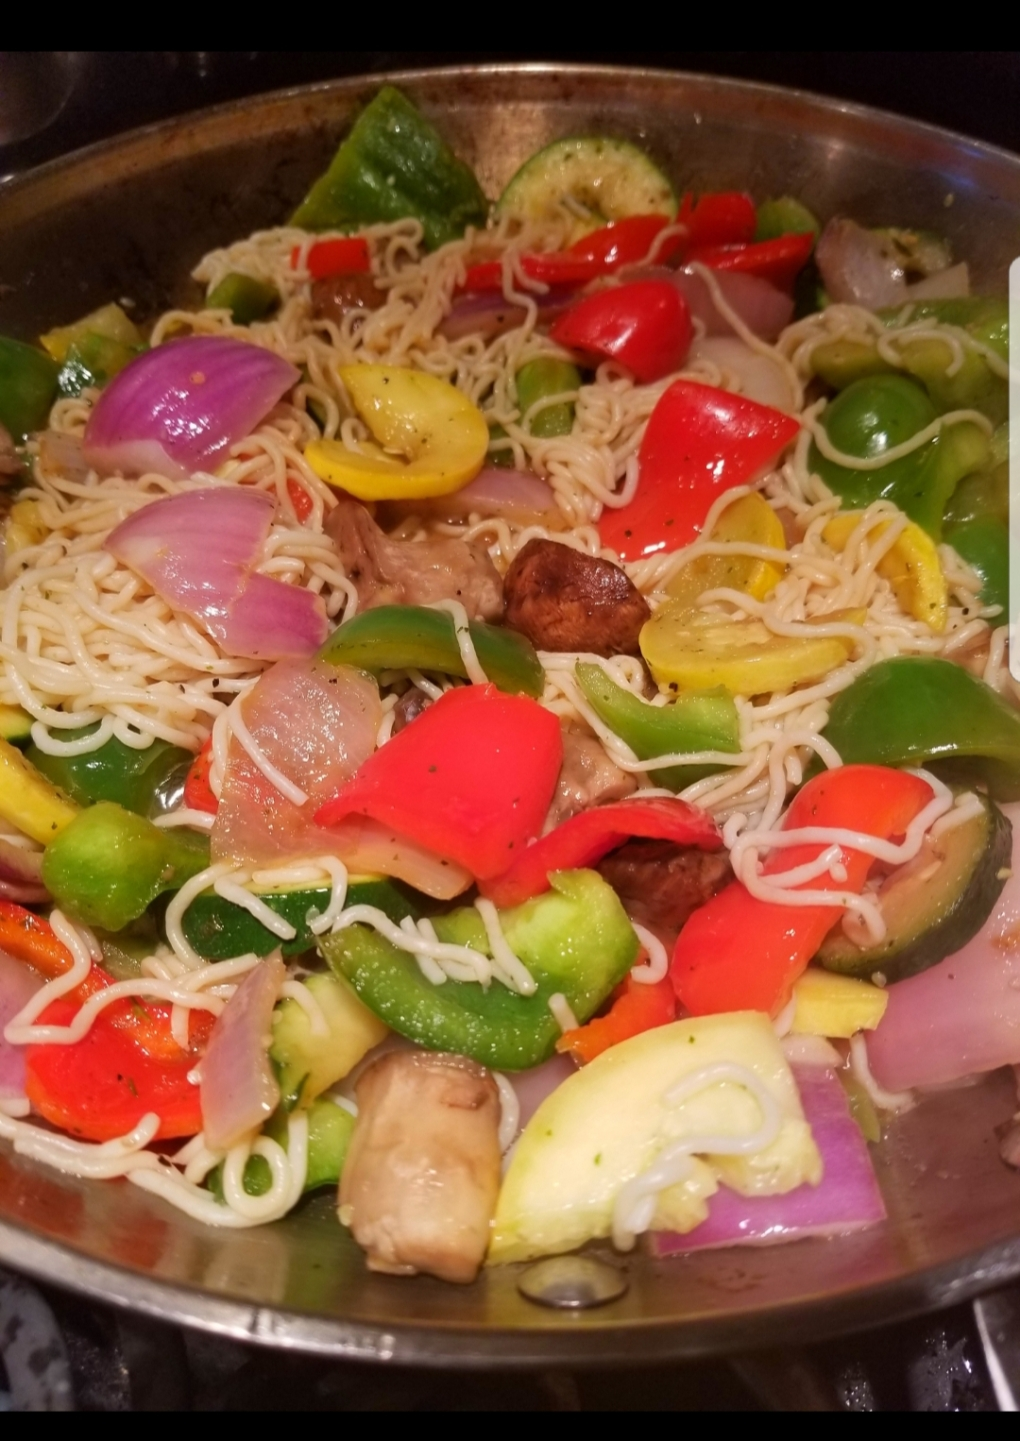 Yummy yummy baby conscious recipes remedies by drdesi4health 20180208134644 forumfinder Image collections